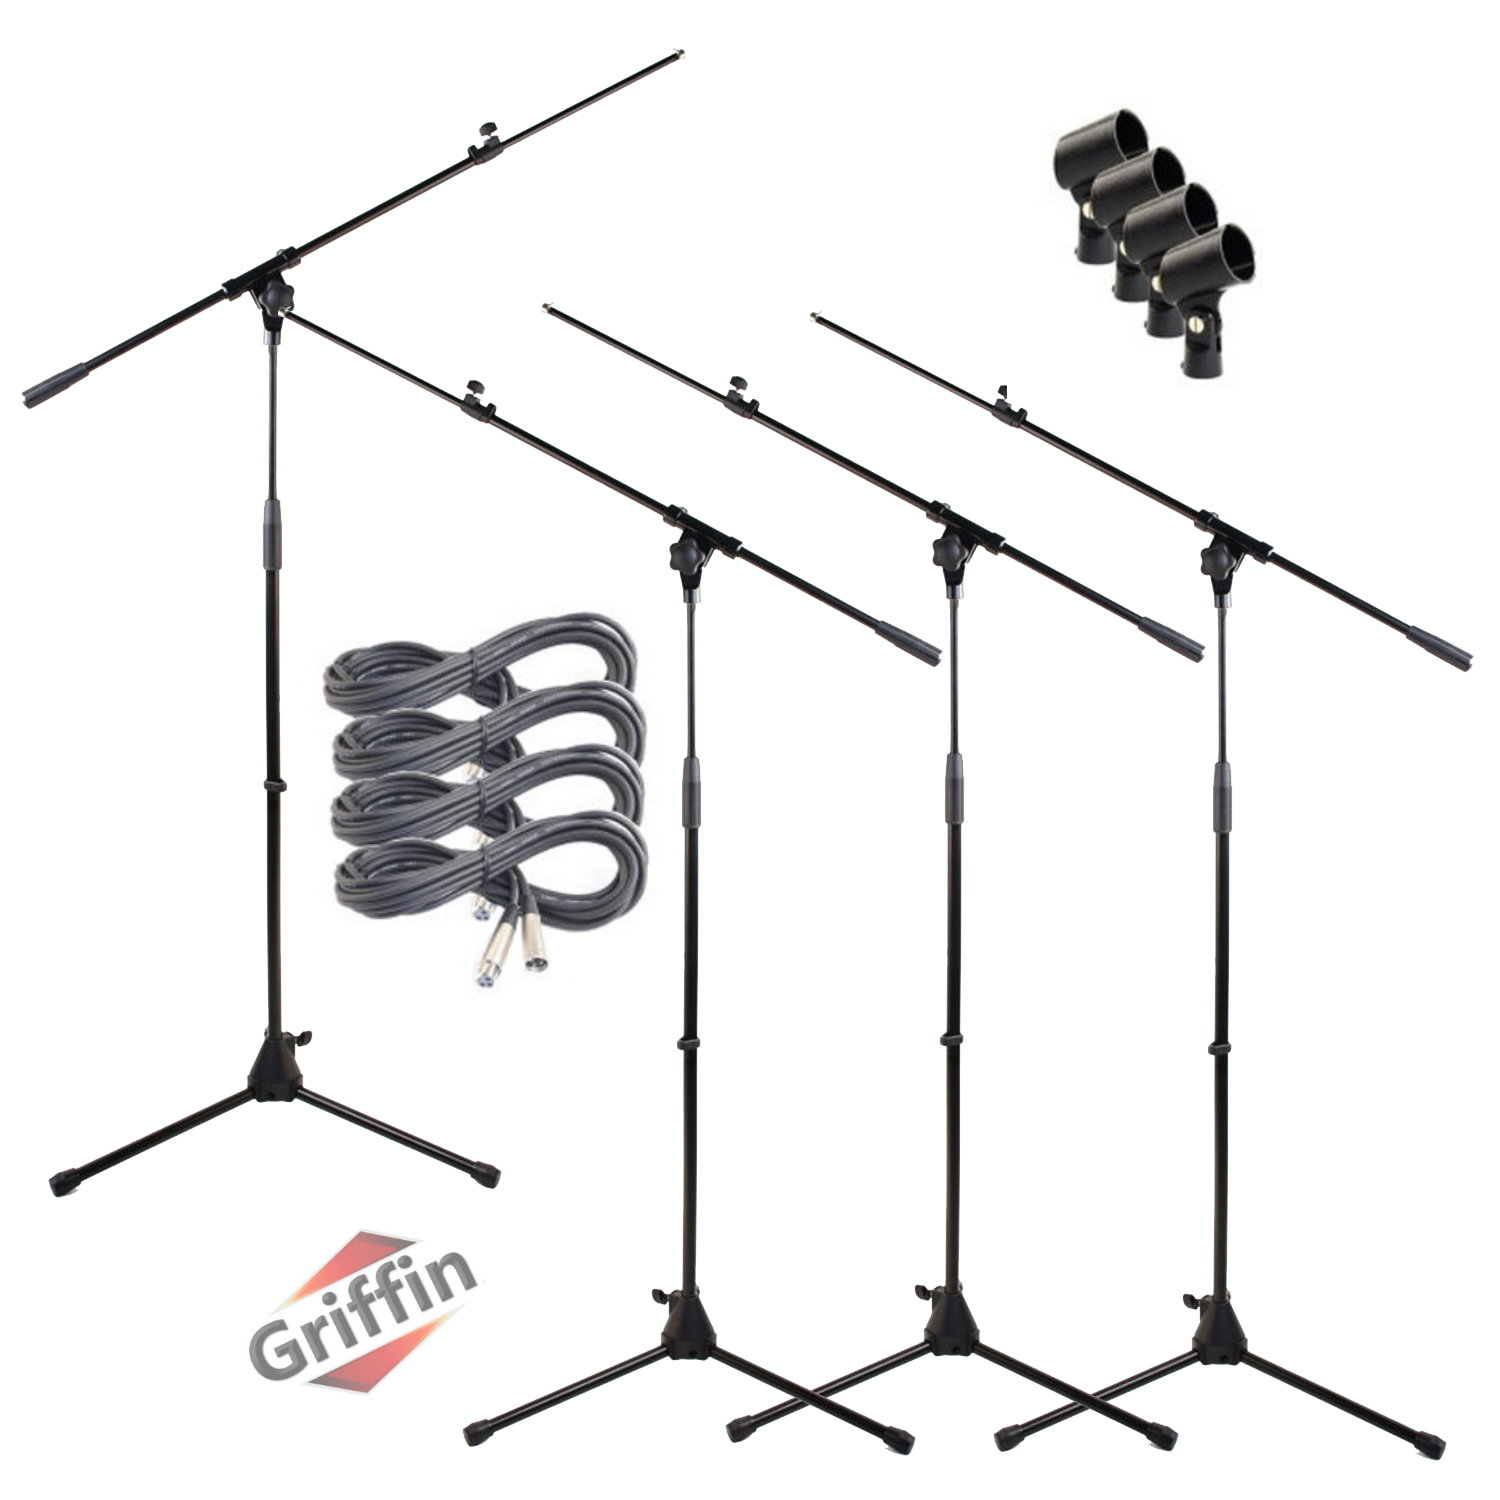 Mic Boom Stands with XLR Microphone Cables and Microphone Clips 4 Pack by Griffin